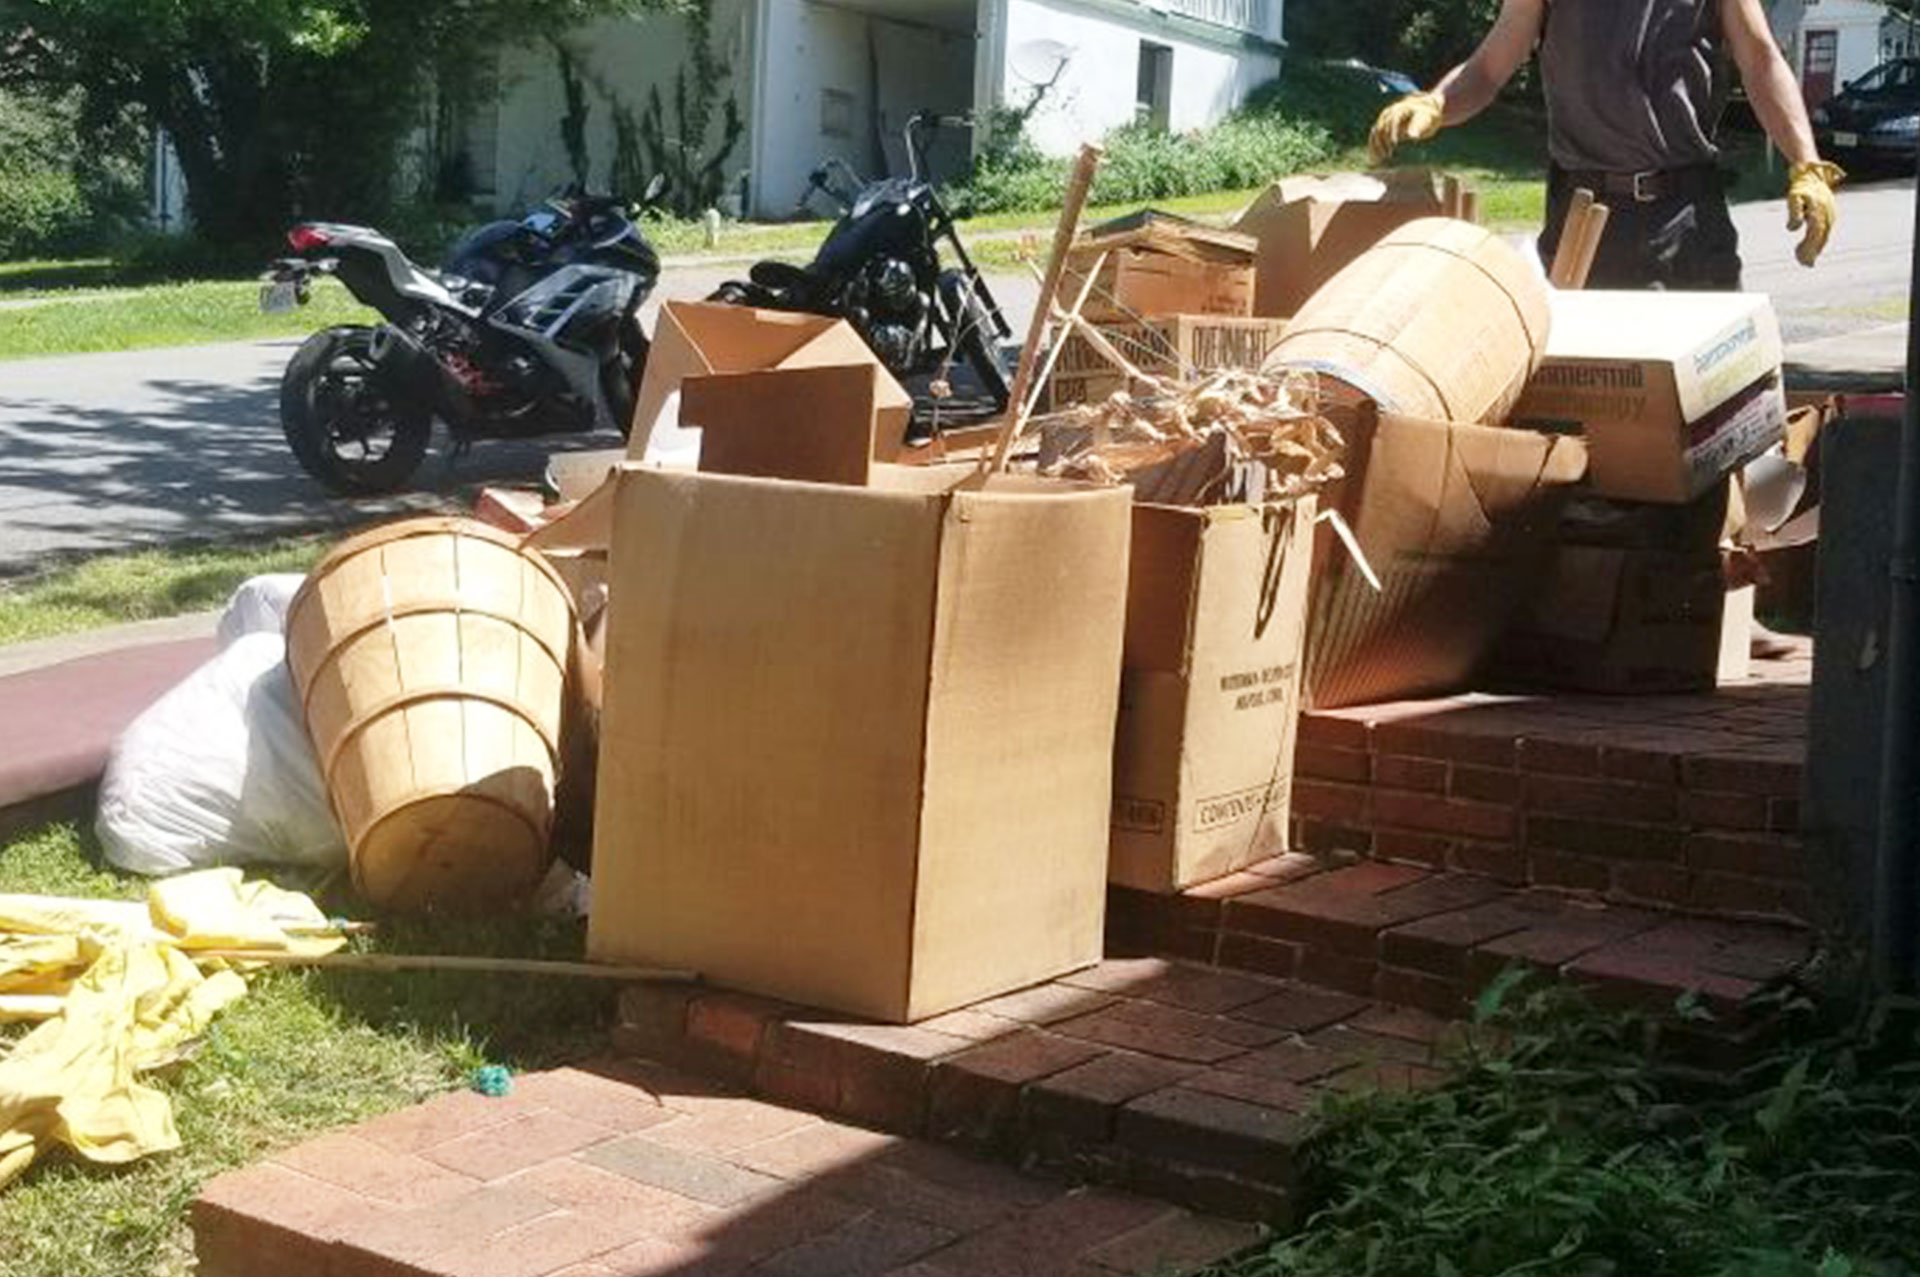 Weekly trash pickup customers receive a discount on junk removal.